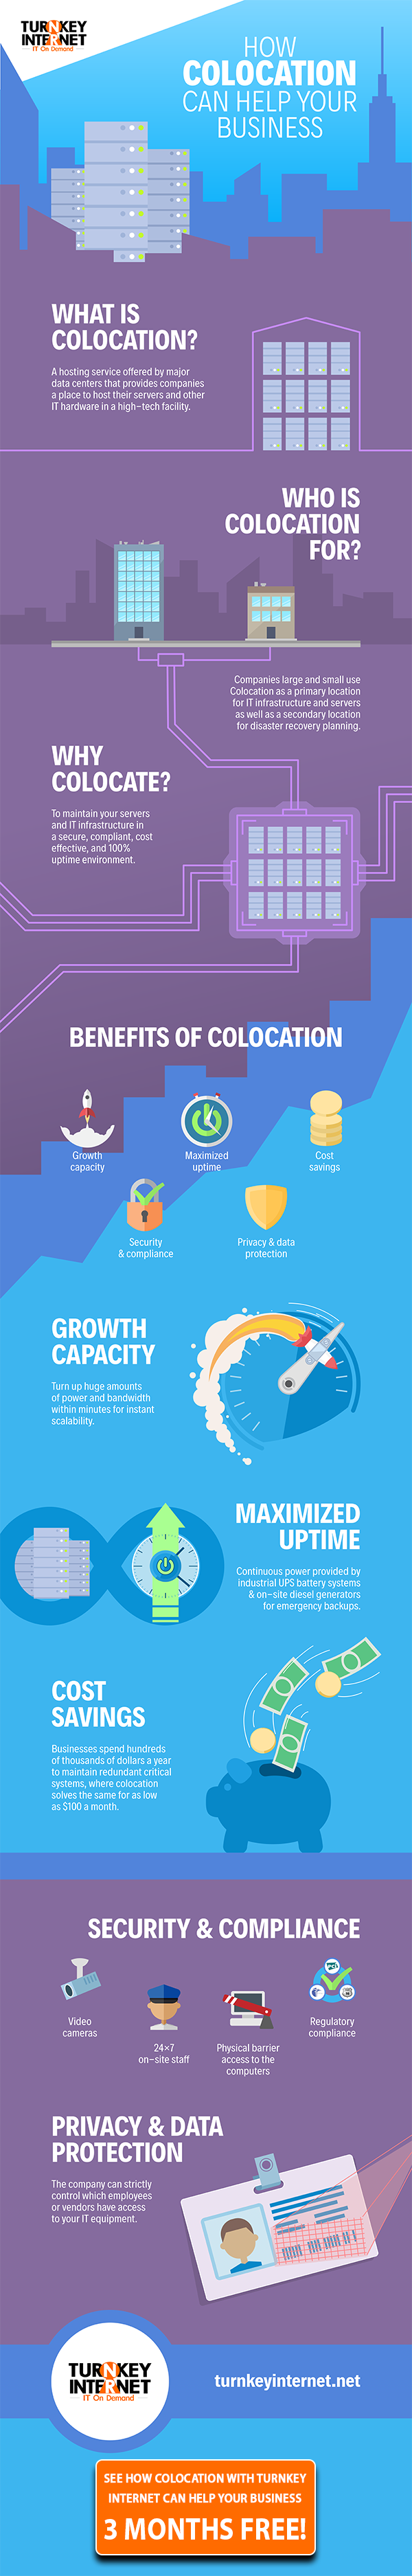 How Colocation Can Help Your Business (Infographic)